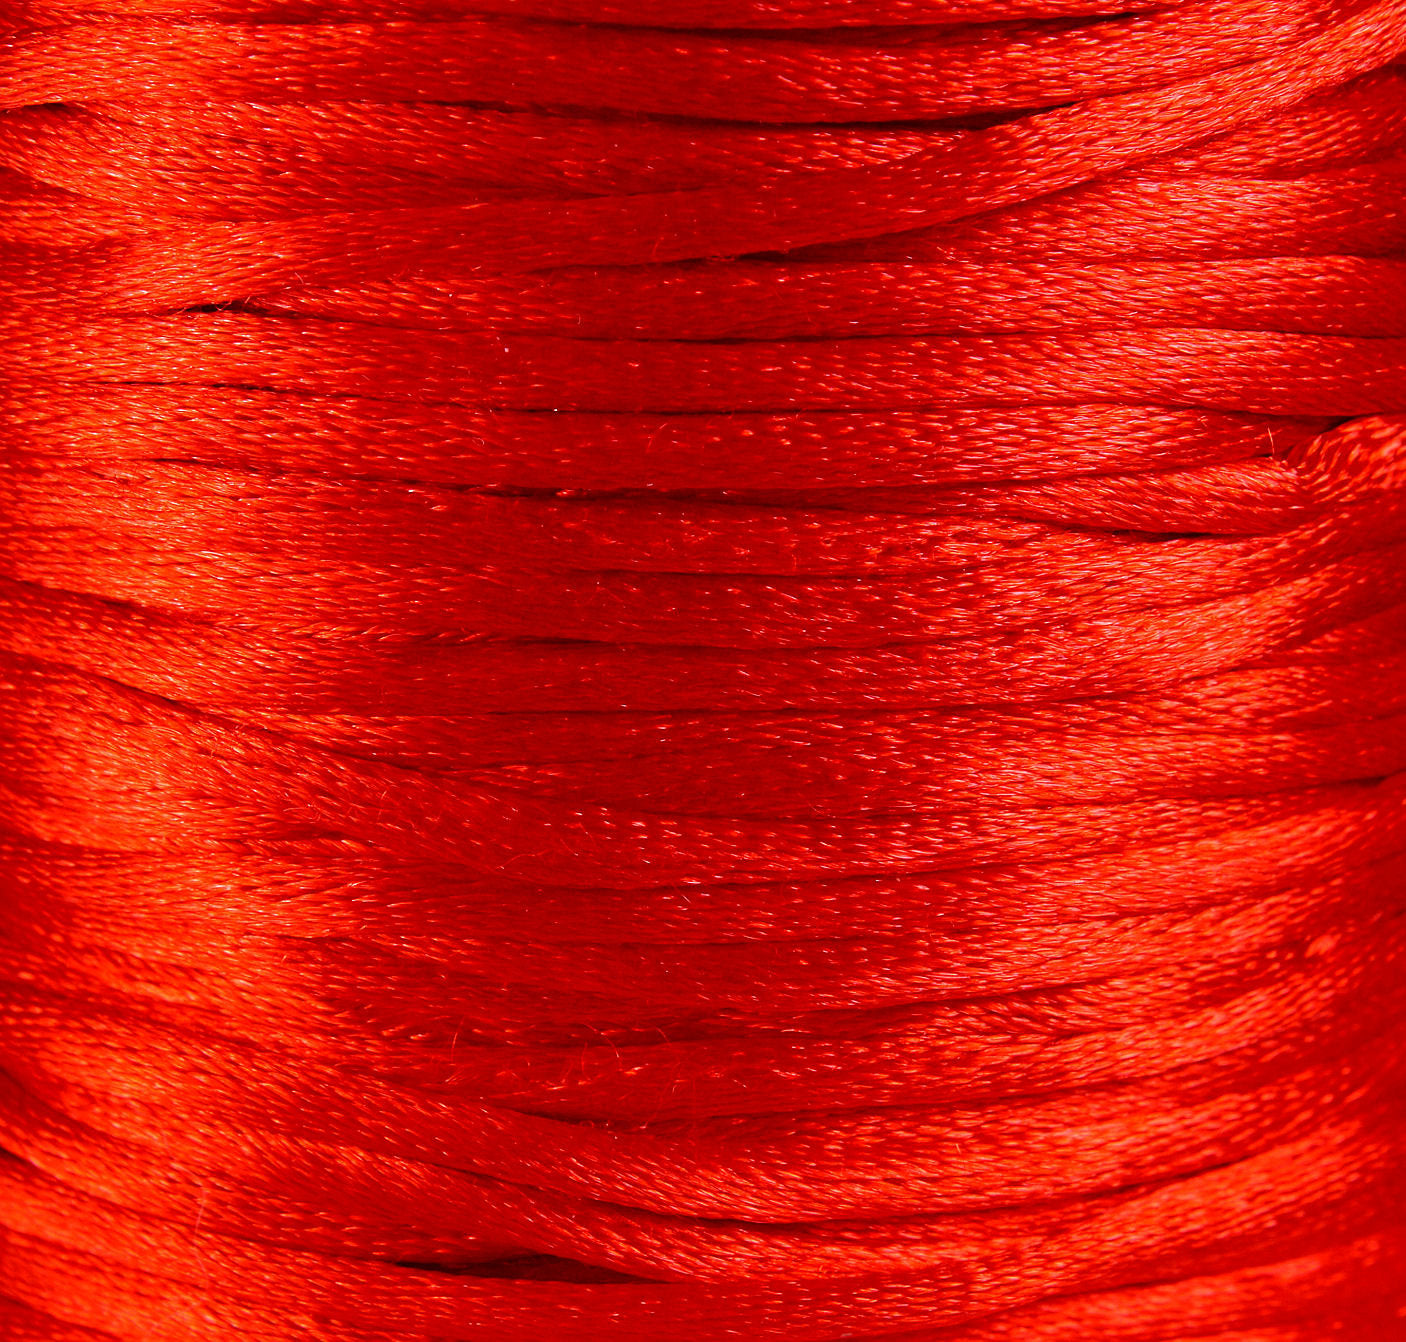 2mm red nylon thread cord - Knotting cord - Thick nylon thread - Nylon satin cord - Macrame cord - 10 feet (R028)